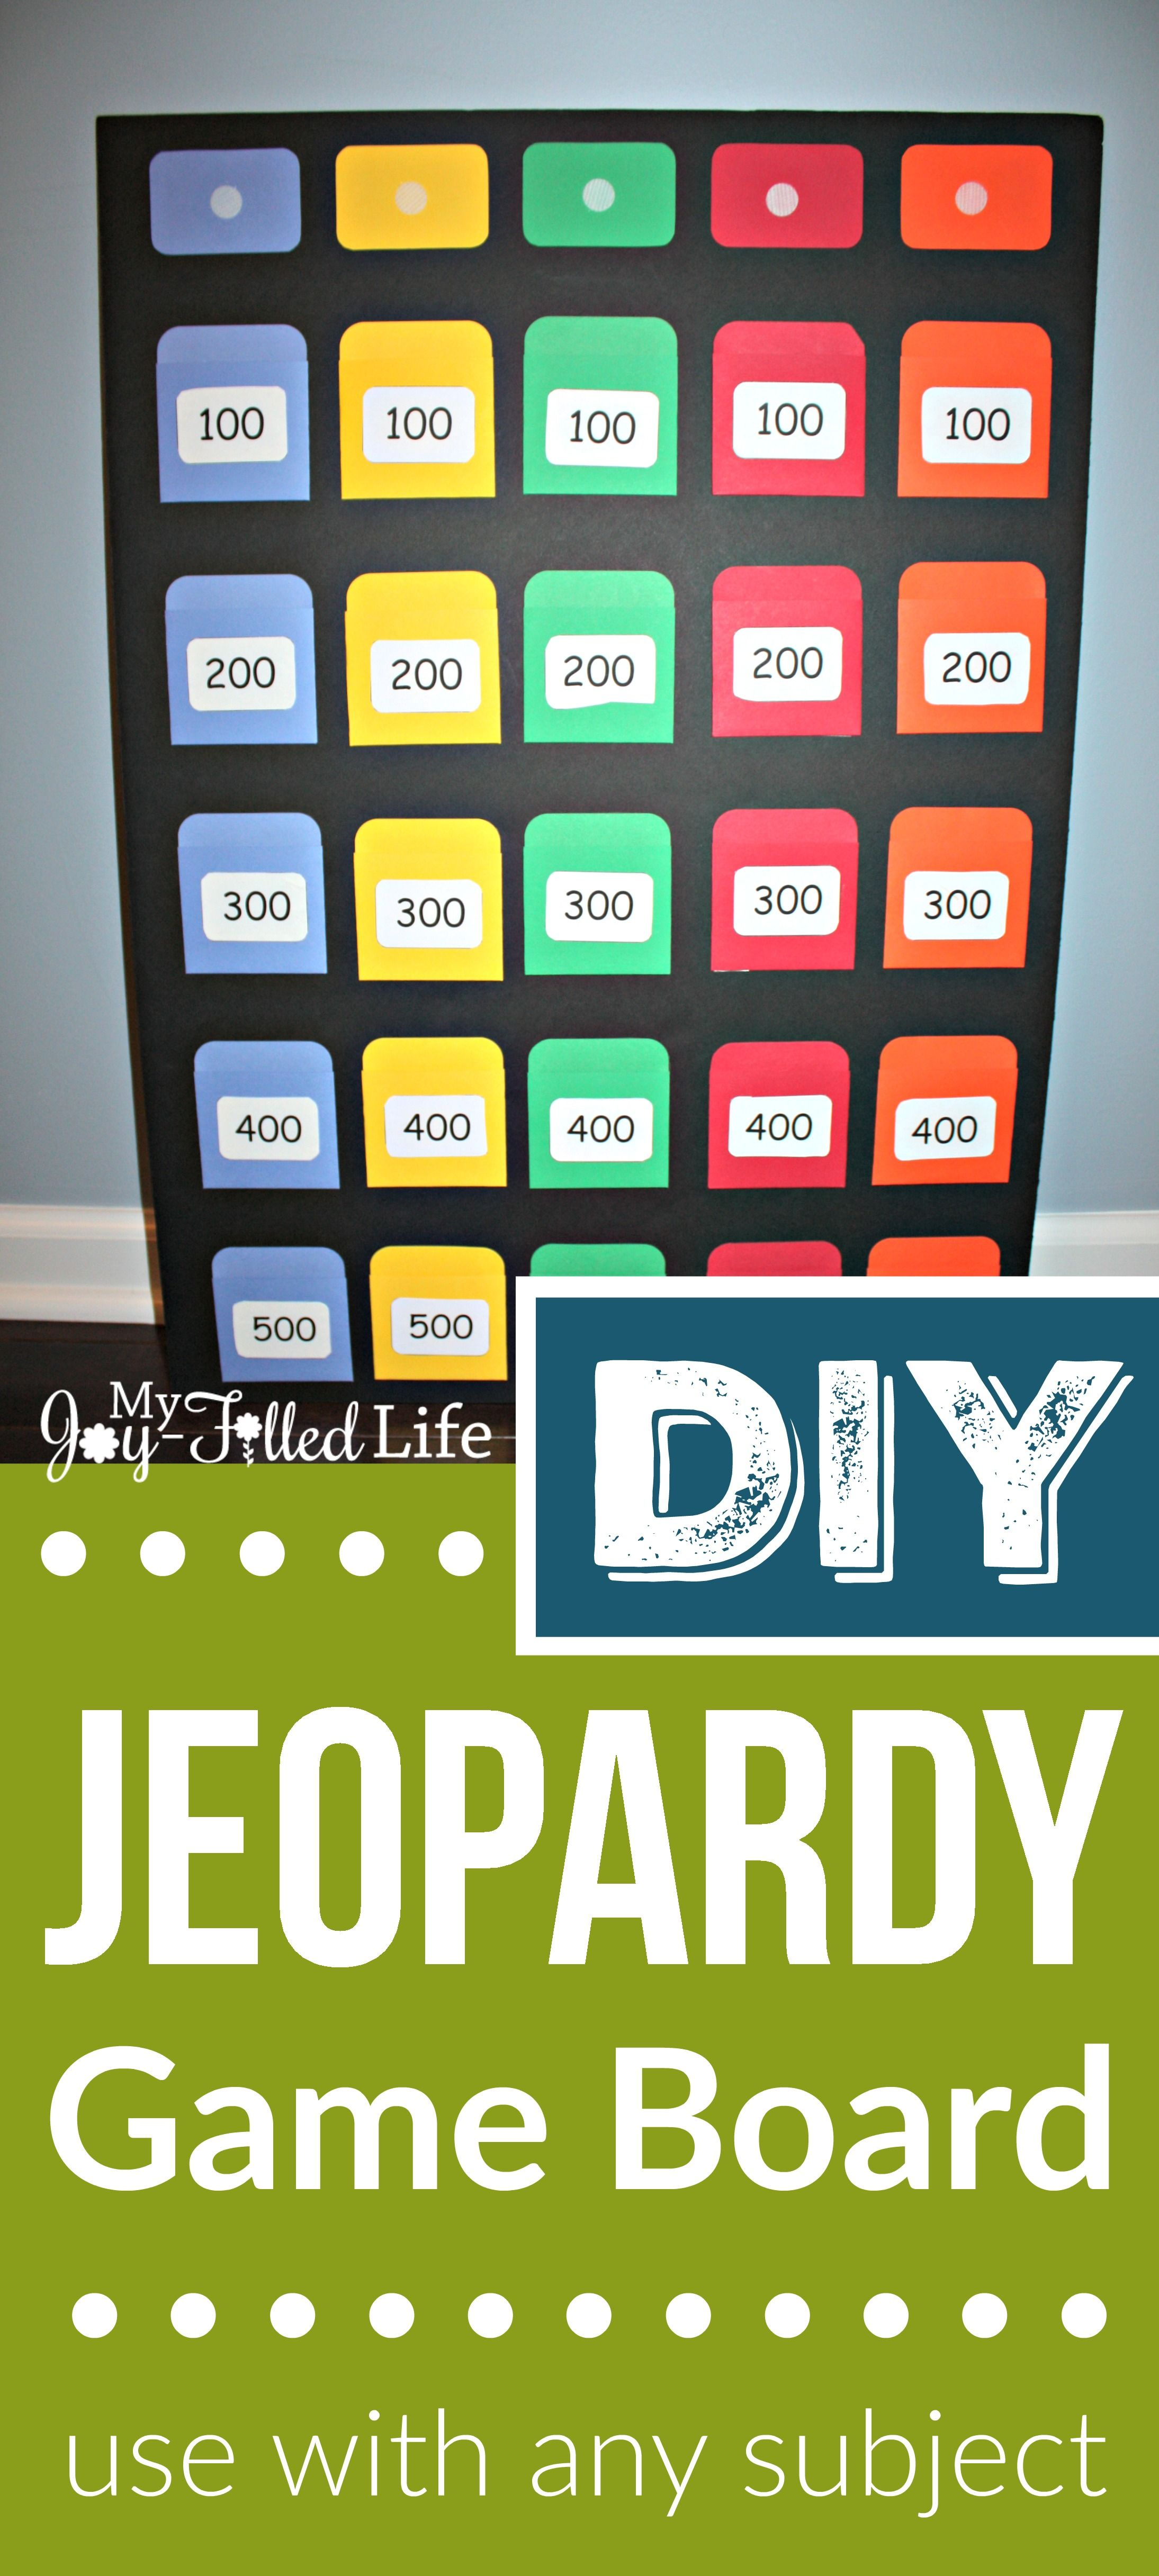 Diy Jeopardy Game Board  Game Boards Gaming And Board